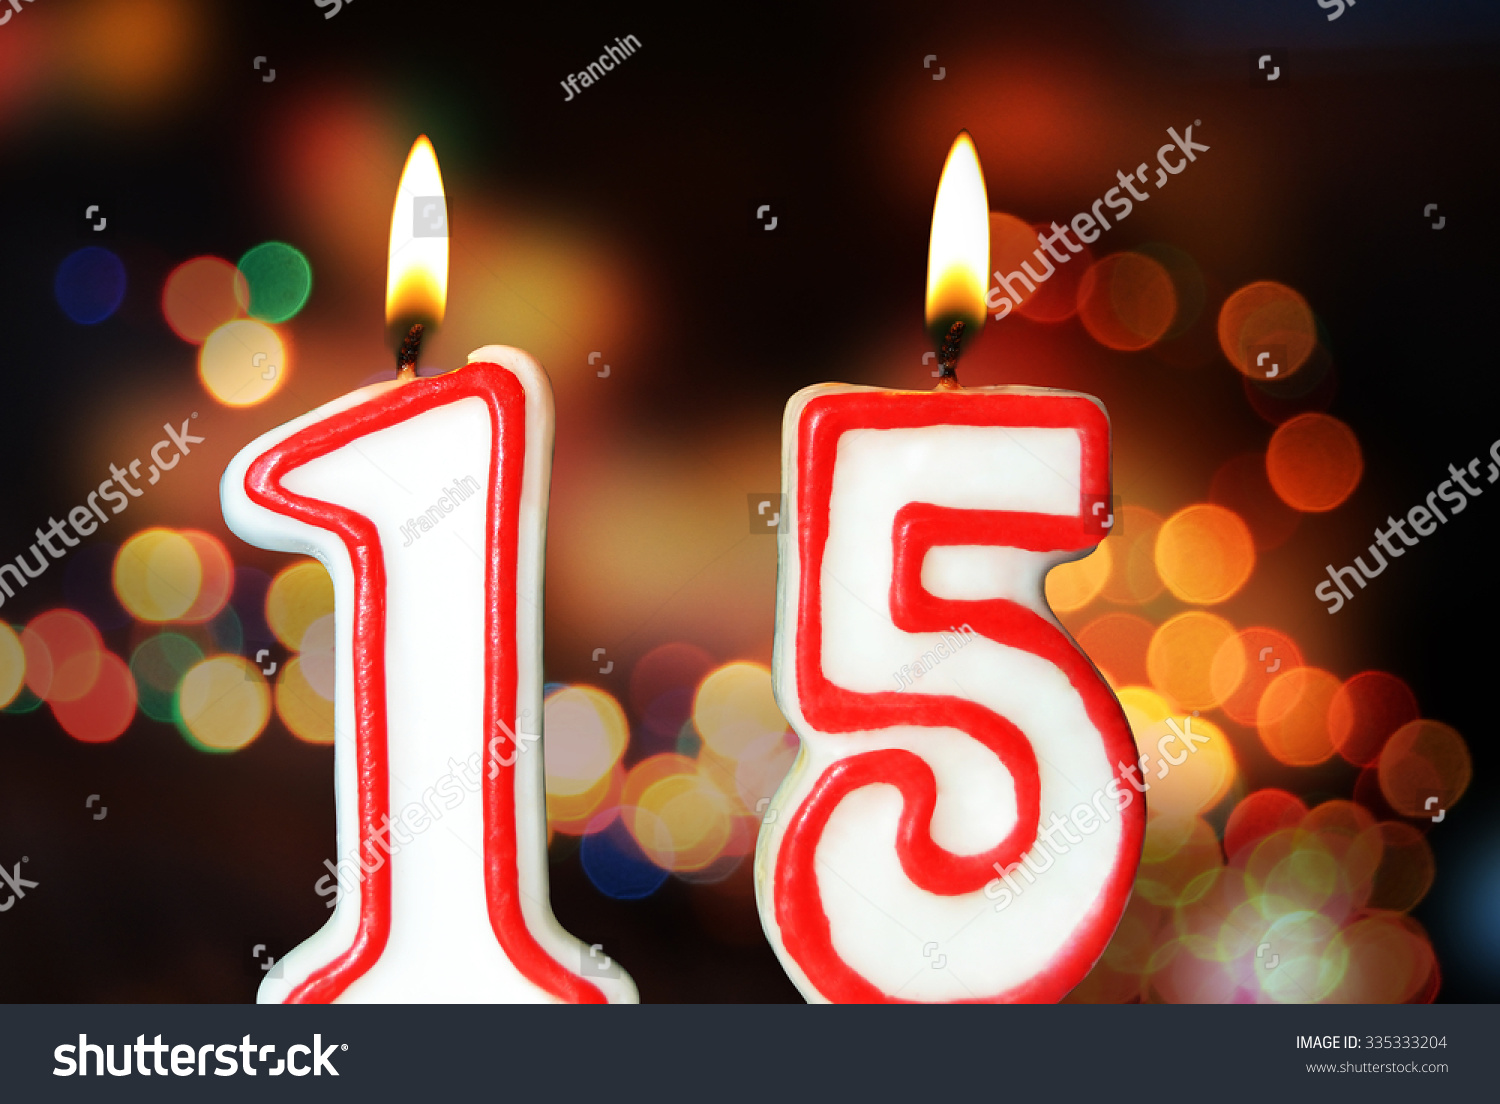 Birthday Candles Celebrating 15th Anniversary Stock Photo